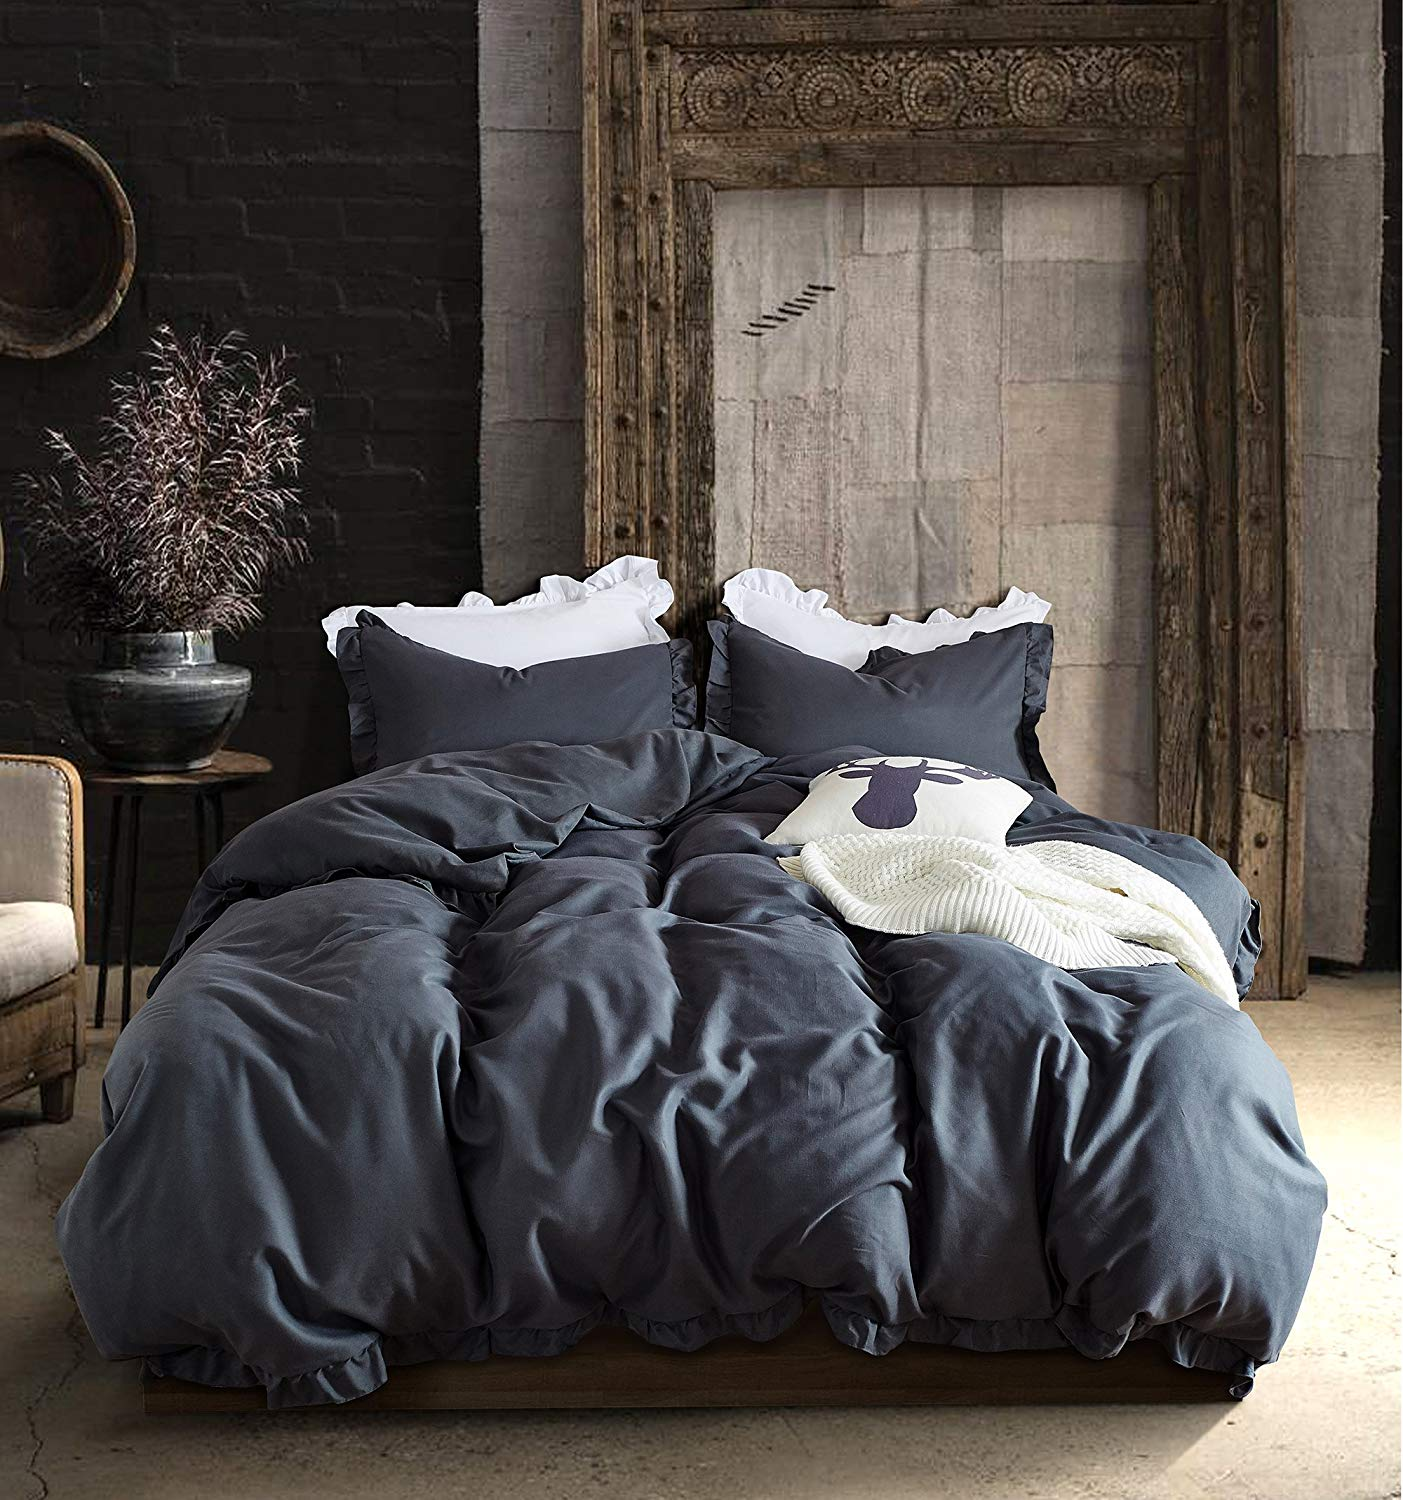 WAFTING King Duvet Cover Set with 2 Pillowcase and 1 Duvet Cover,Exquisite Ruffles Style for Adults Kids Bedding by, Dark Grey Microfiber Polyester - Hypoallergenic - without Comforter